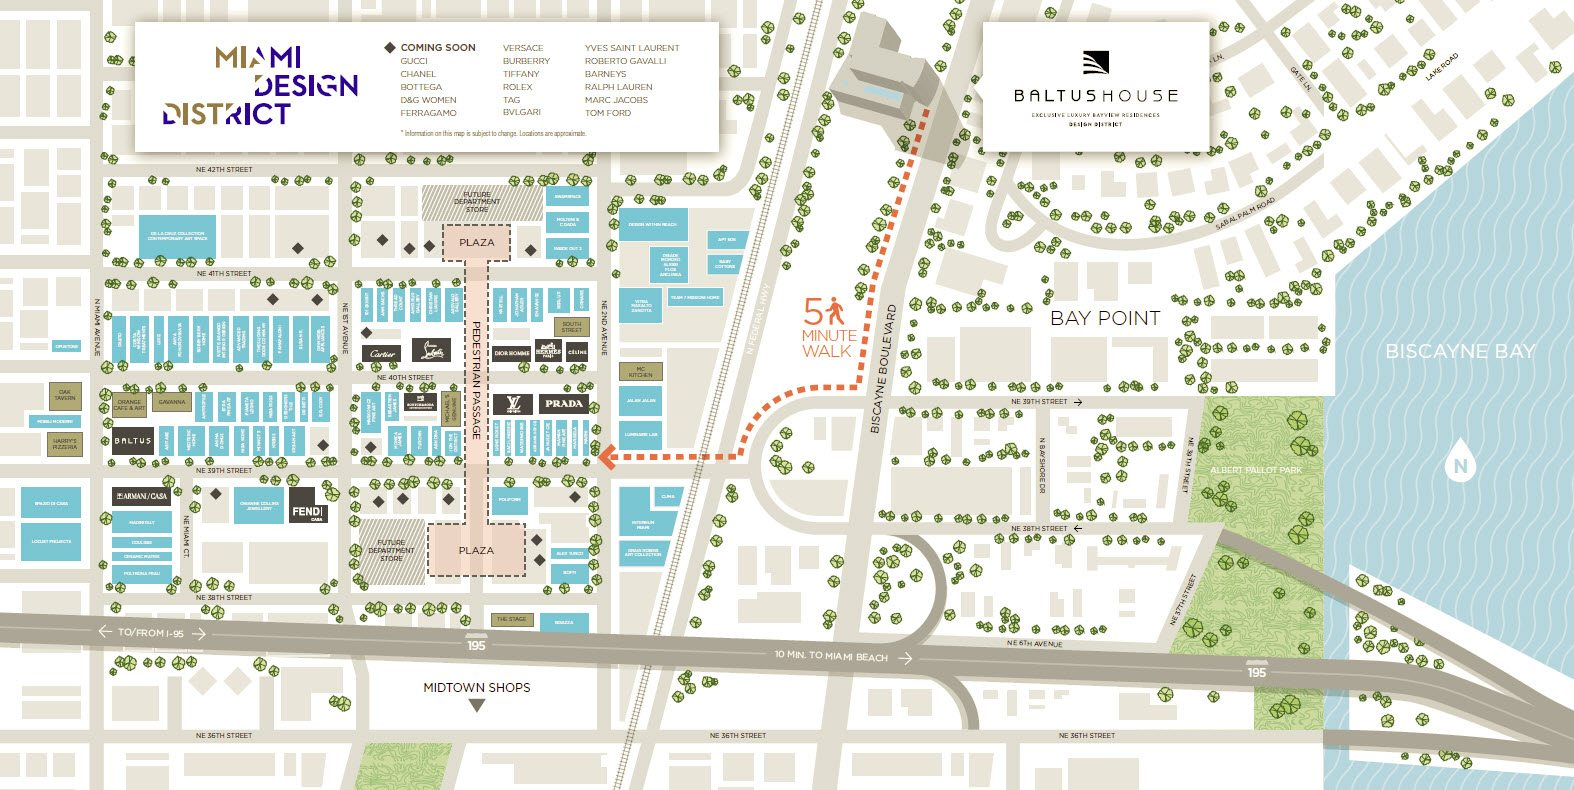 A five minute walk from the luxury shops and world famous restaurants in the design district baltus house